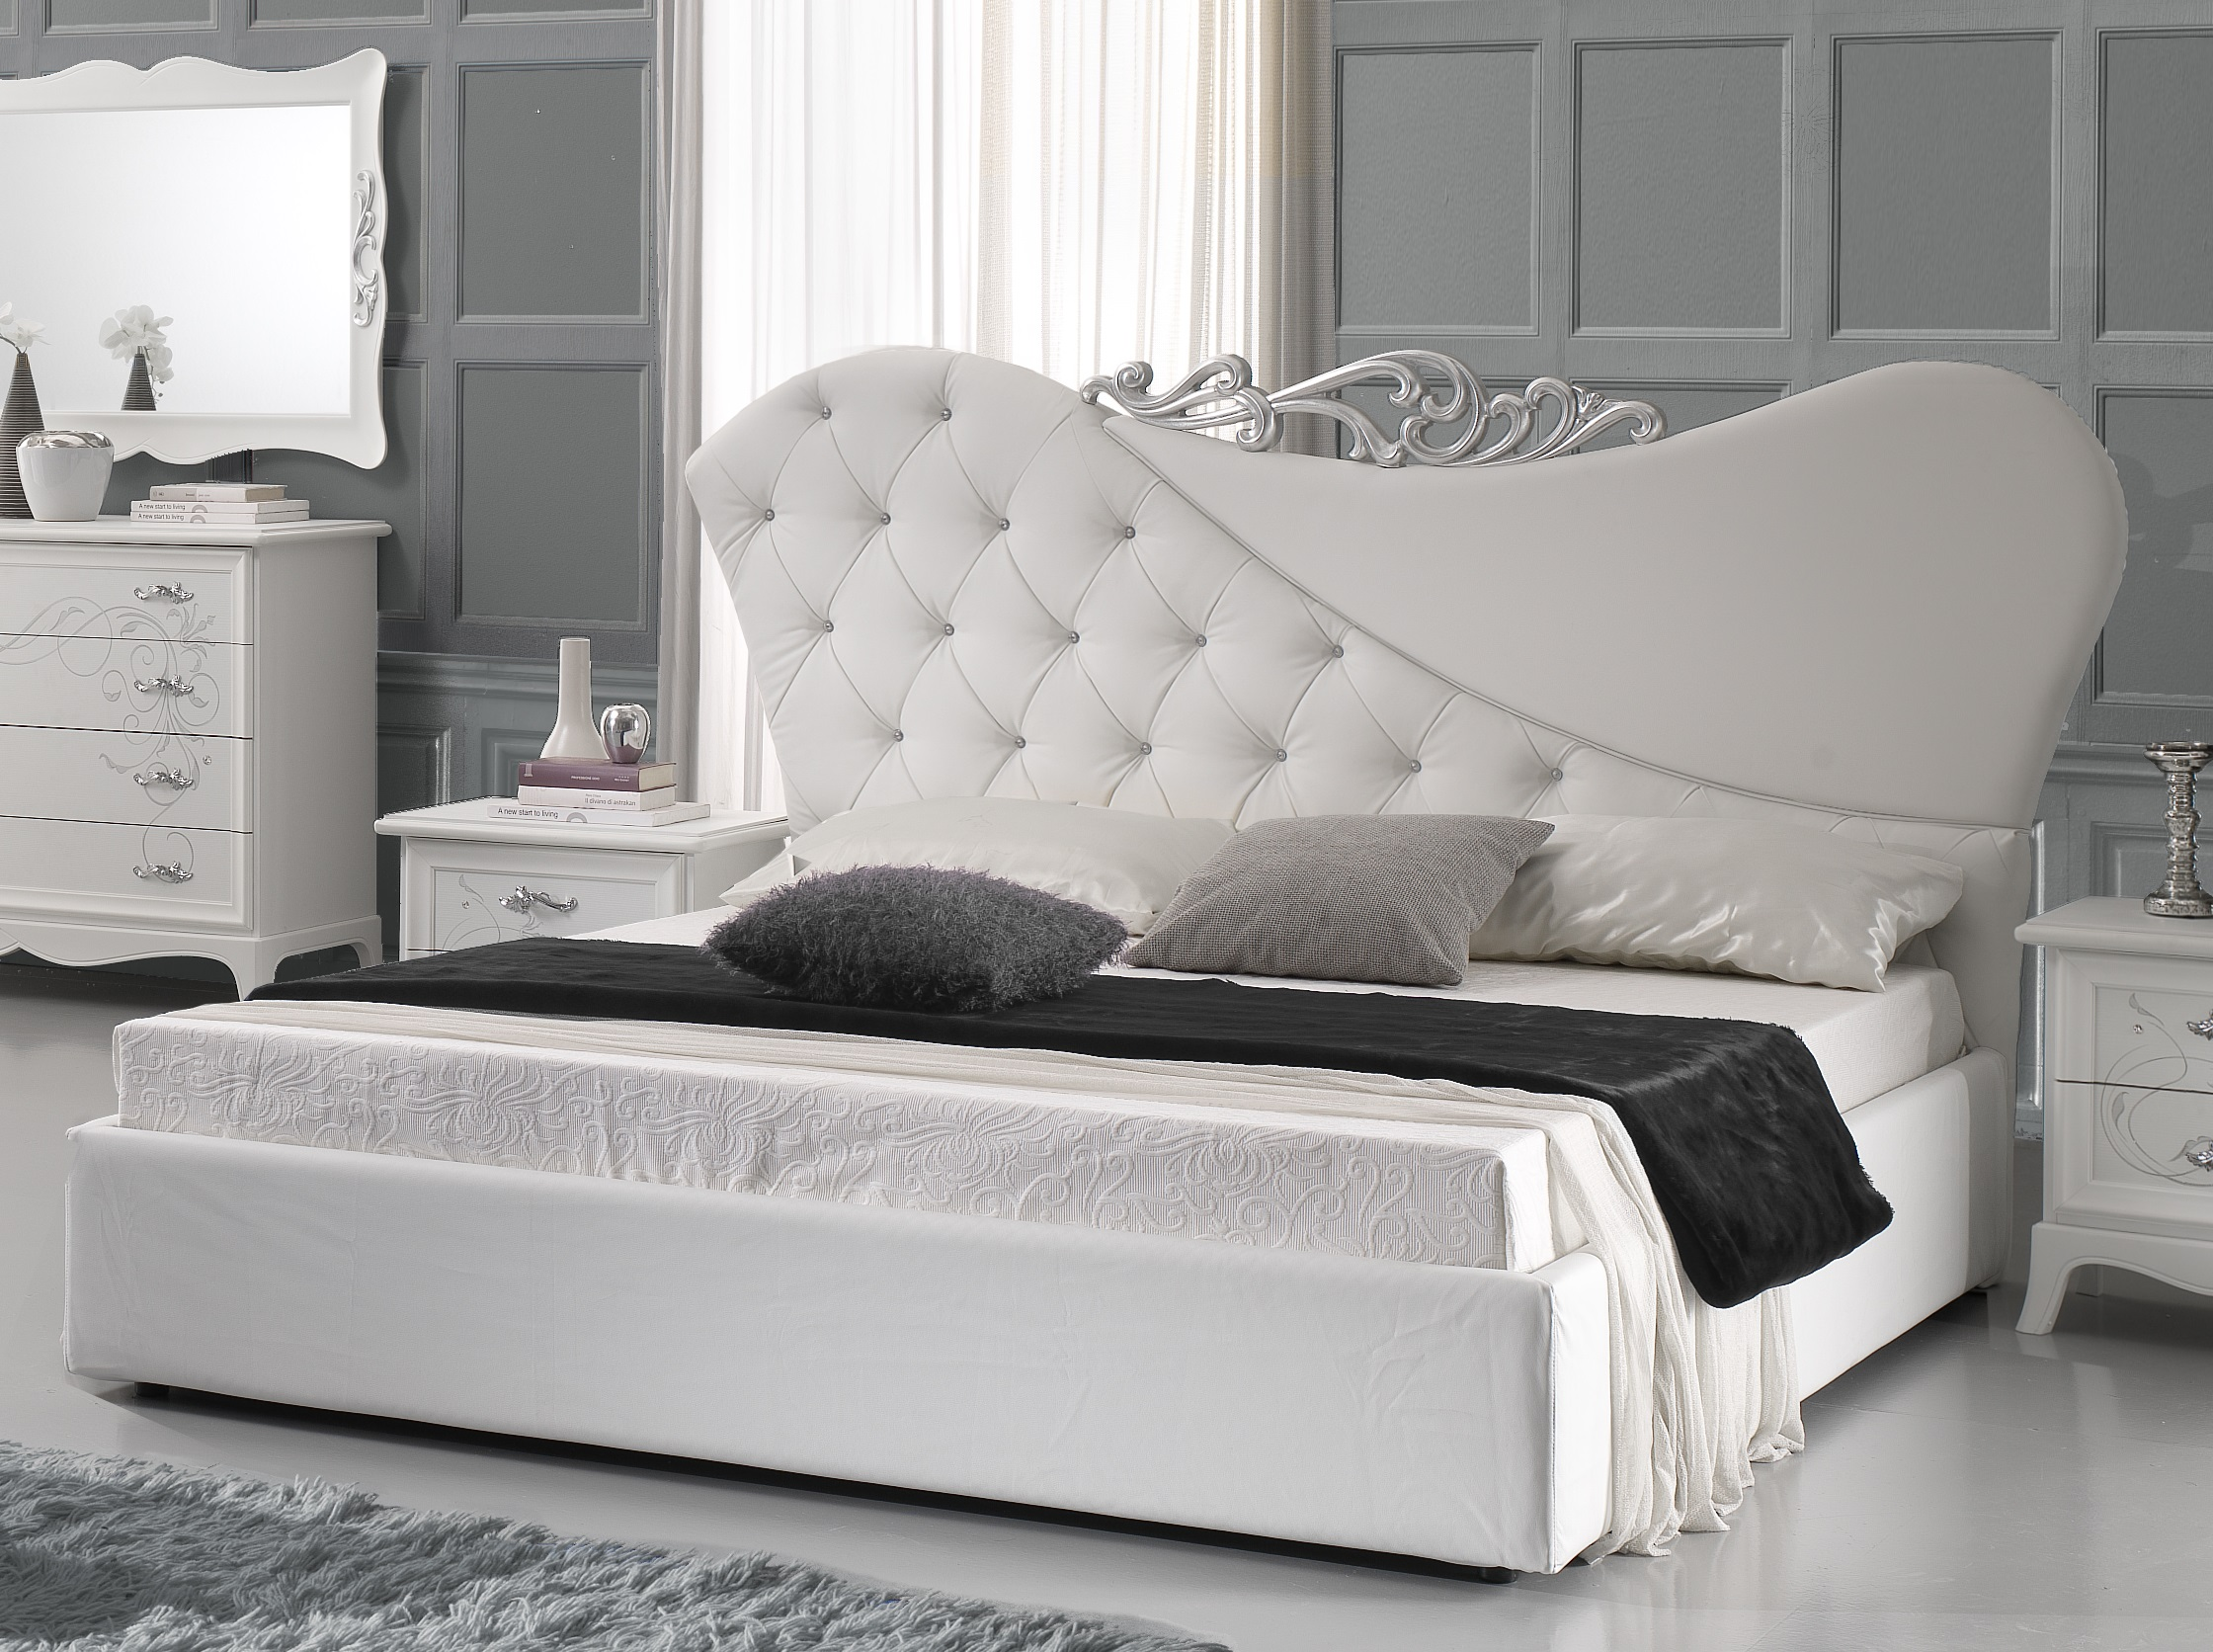 bett 180x200cm gisell in weiss edel luxus schlafzimmer gis b180. Black Bedroom Furniture Sets. Home Design Ideas